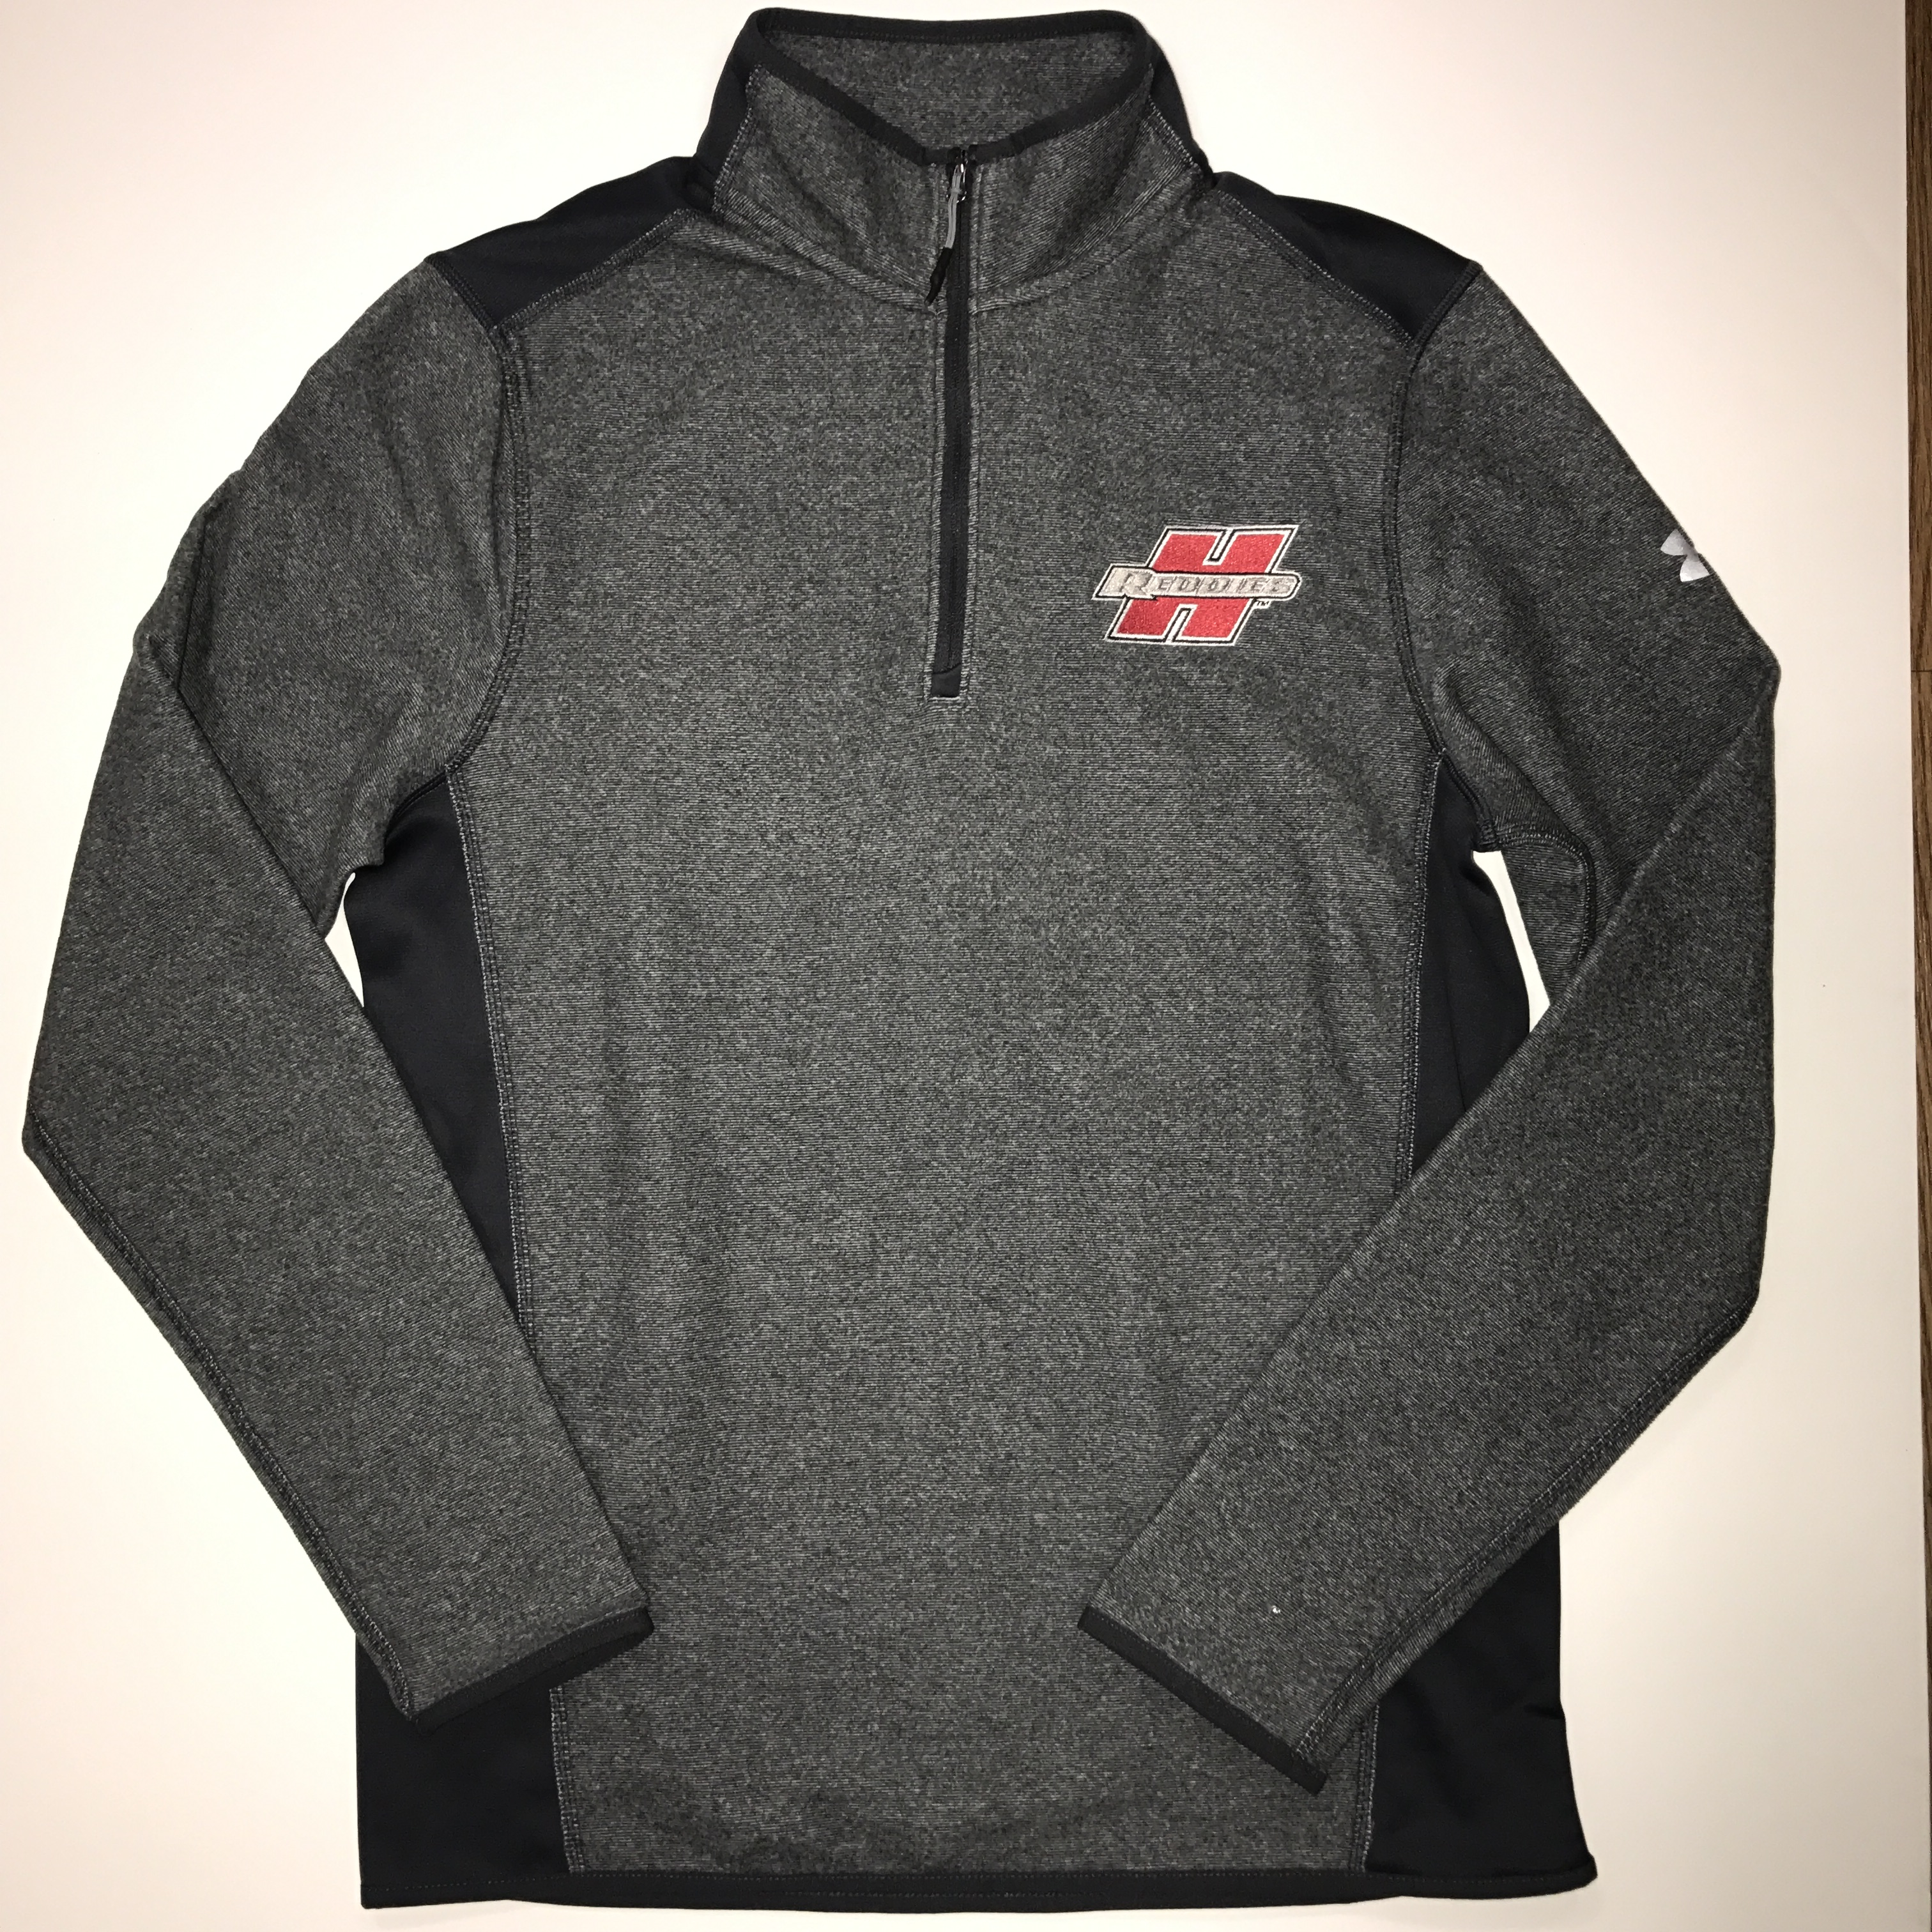 Under Armour Infared 1/4 Zip